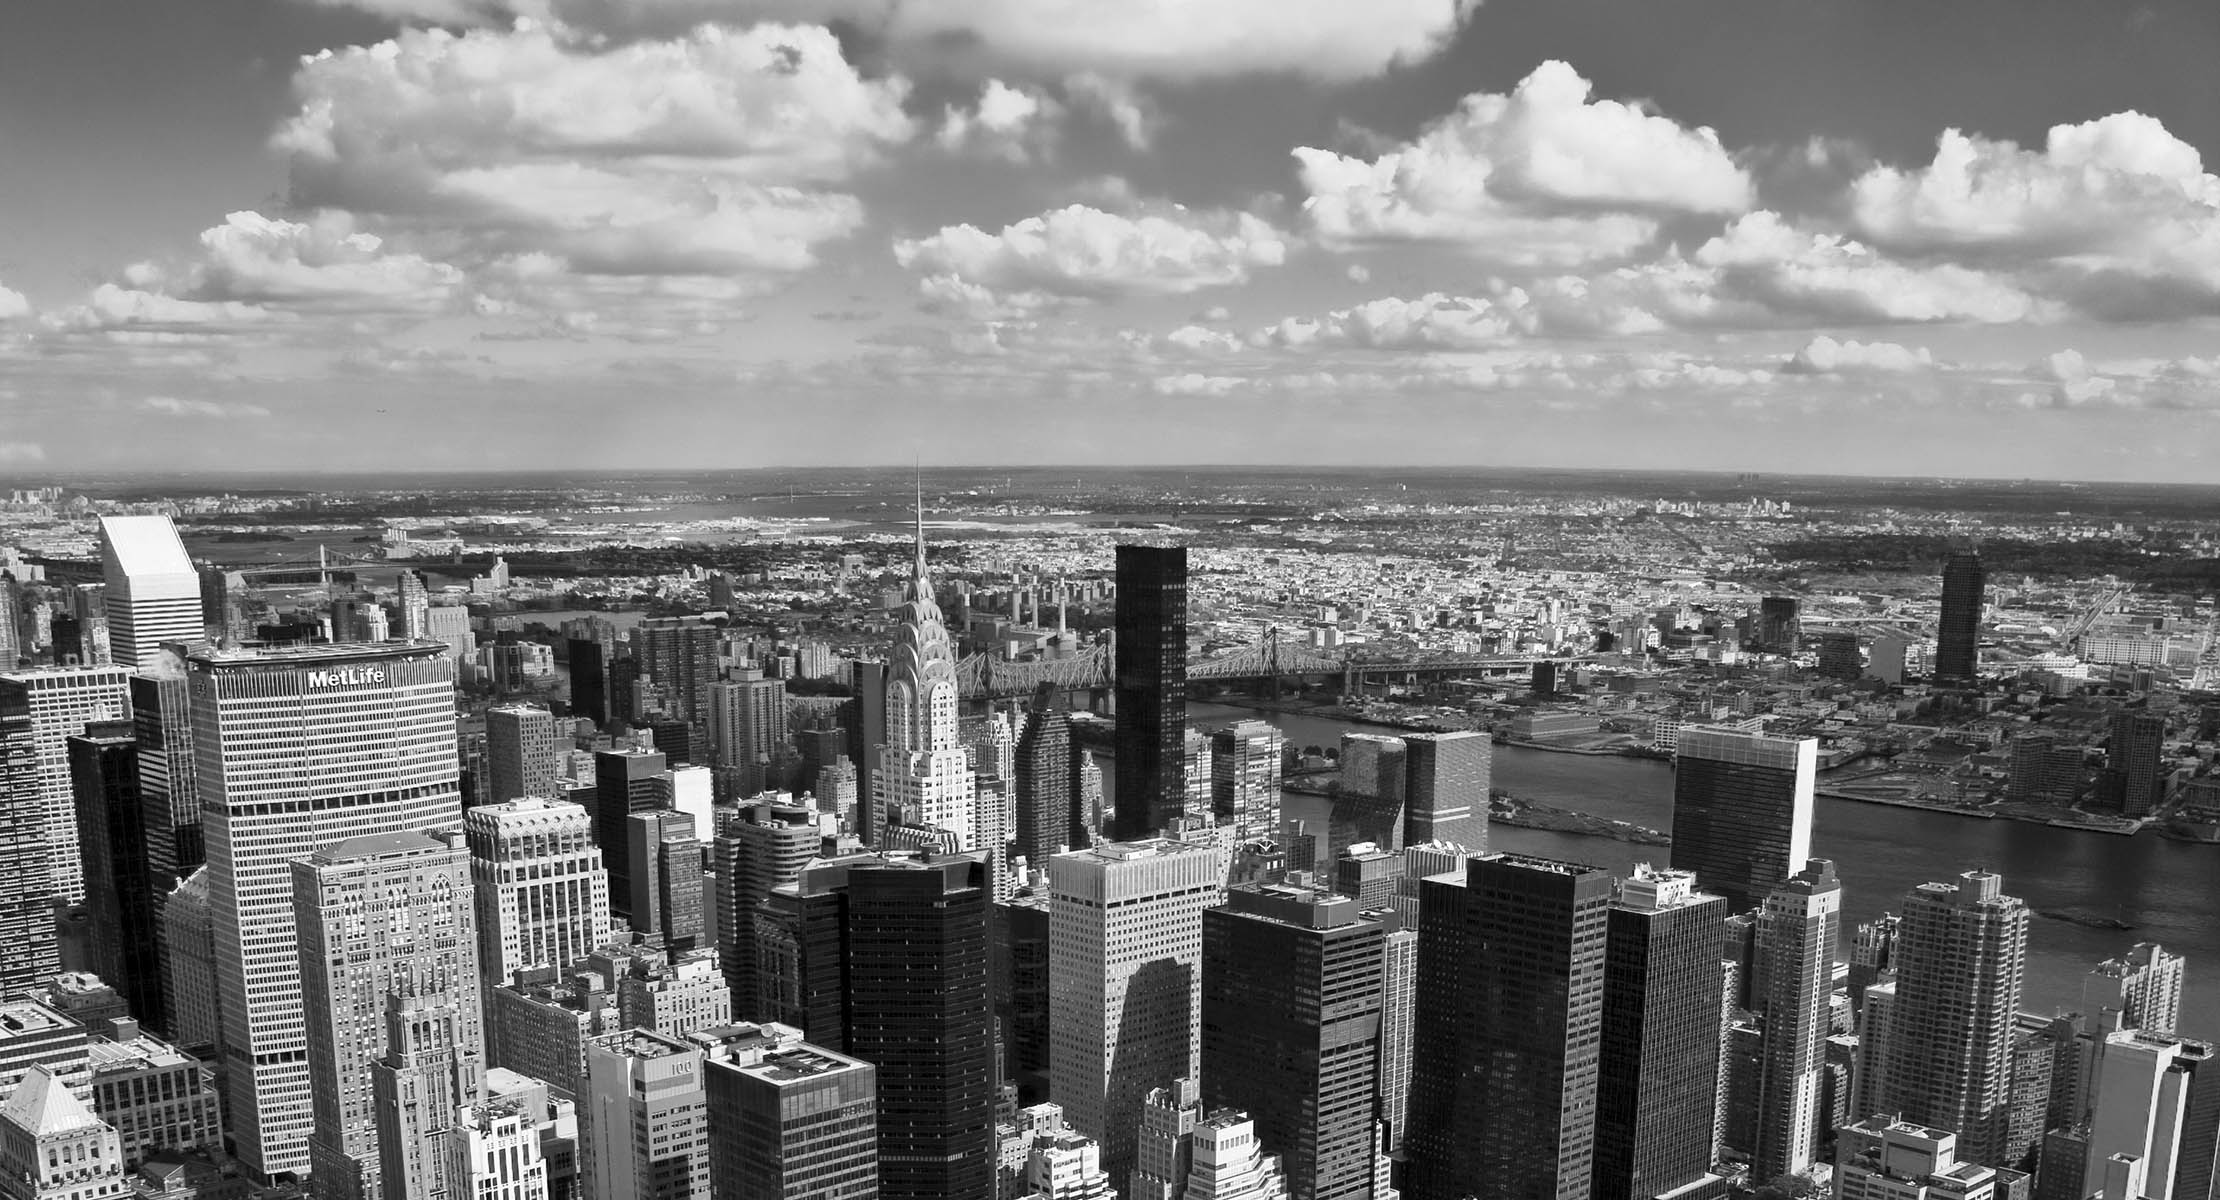 Mike Blume, New York, Manhattan, Chrysler Building, Kameramann, Cinematographer, Photographer, Director, Music Video Director, Fotografie, Kameramann Hannover, Fotograf Hannover,